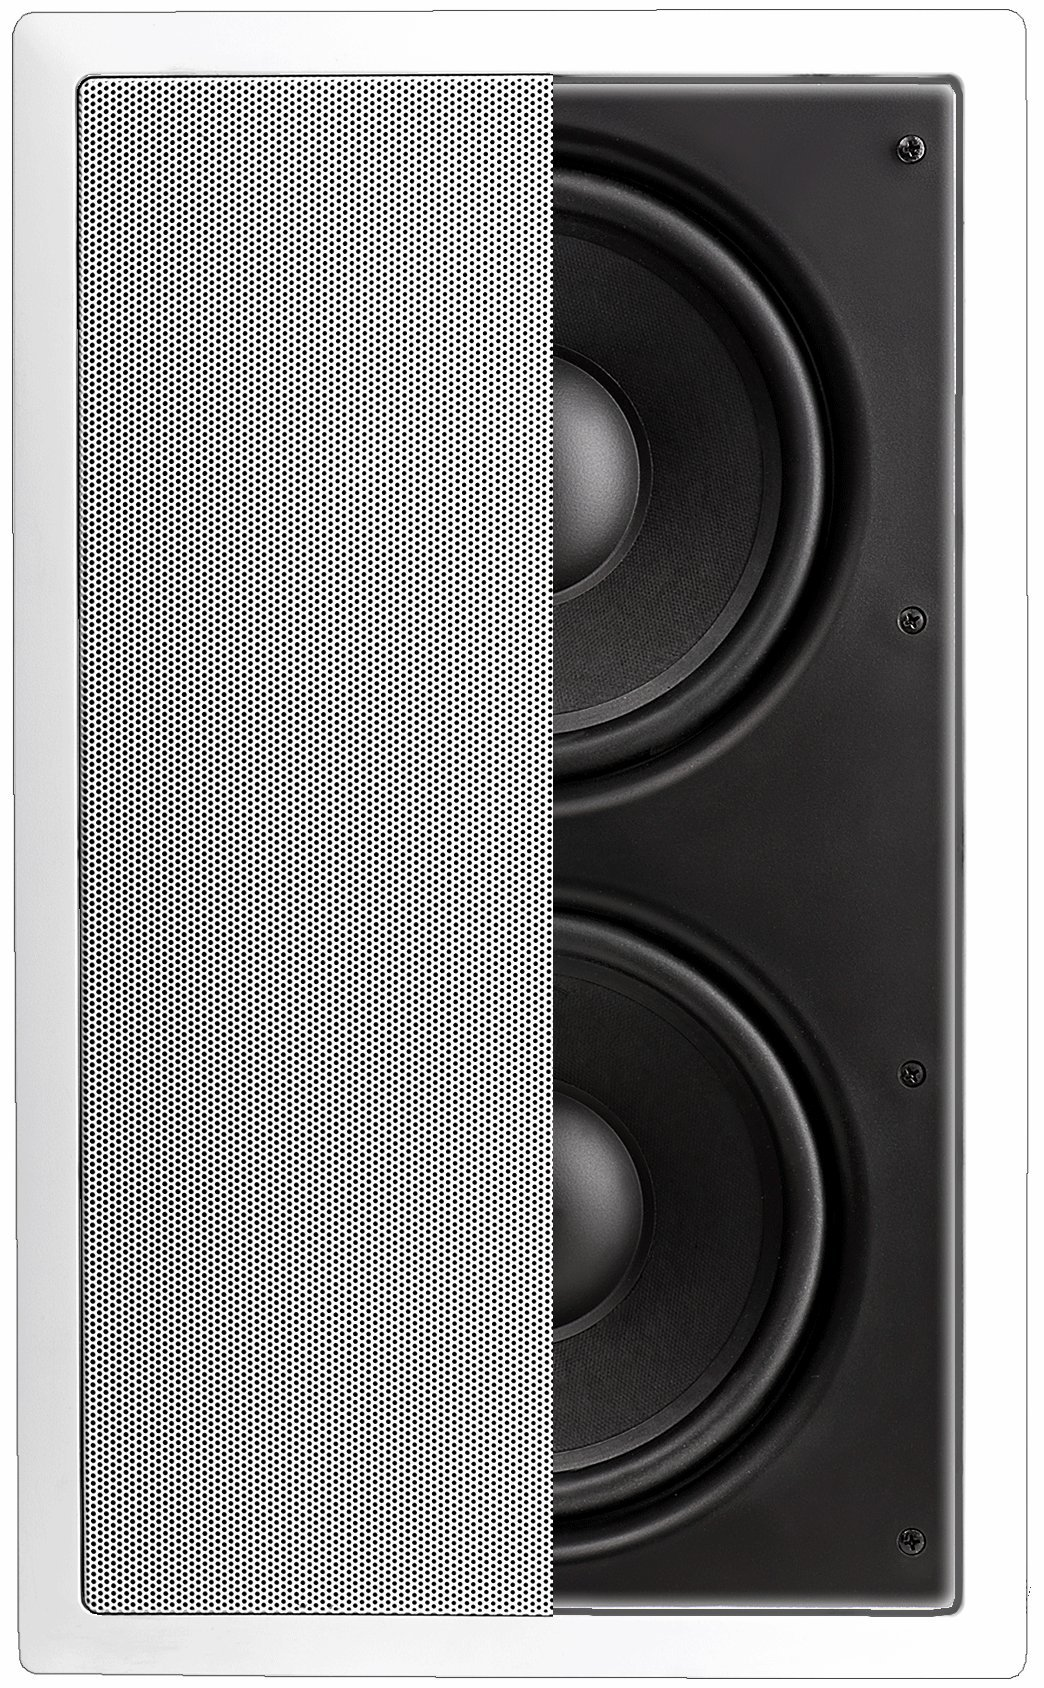 OSD Audio IWS88 In-Wall 350W Home Theater Subwoofer Dual 8-Inch Injected Woofers w/Back Bridge to Enhance Bass